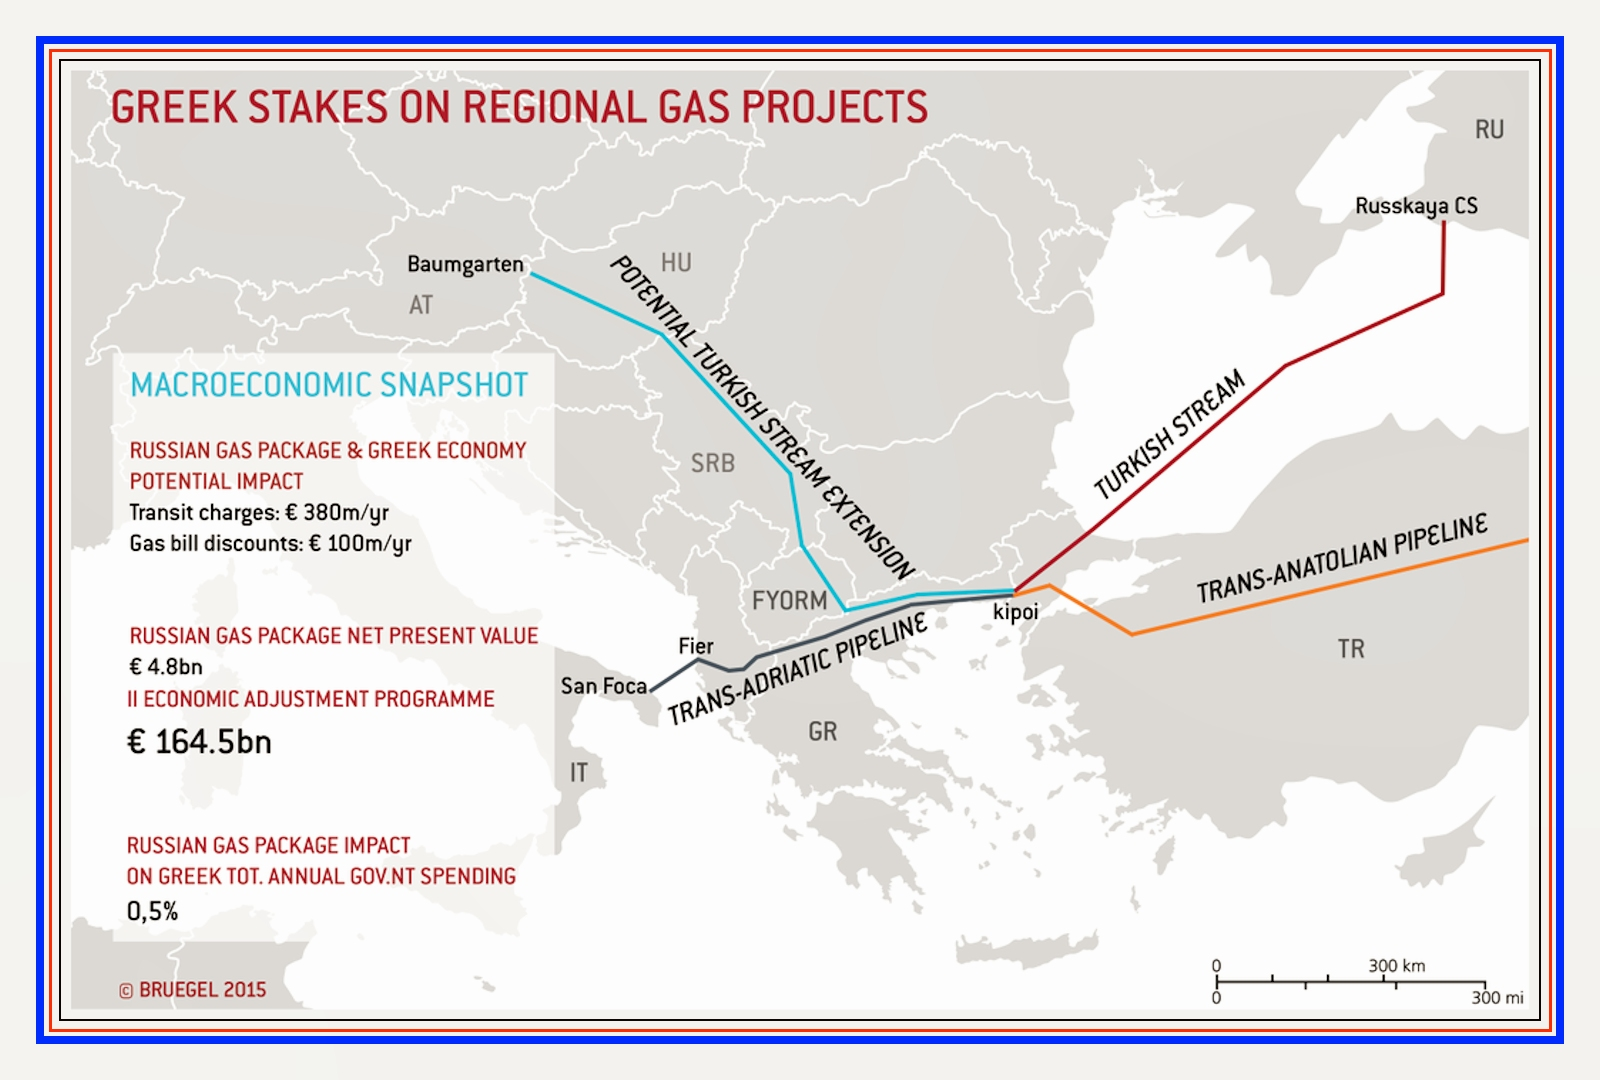 00 russian gas projects